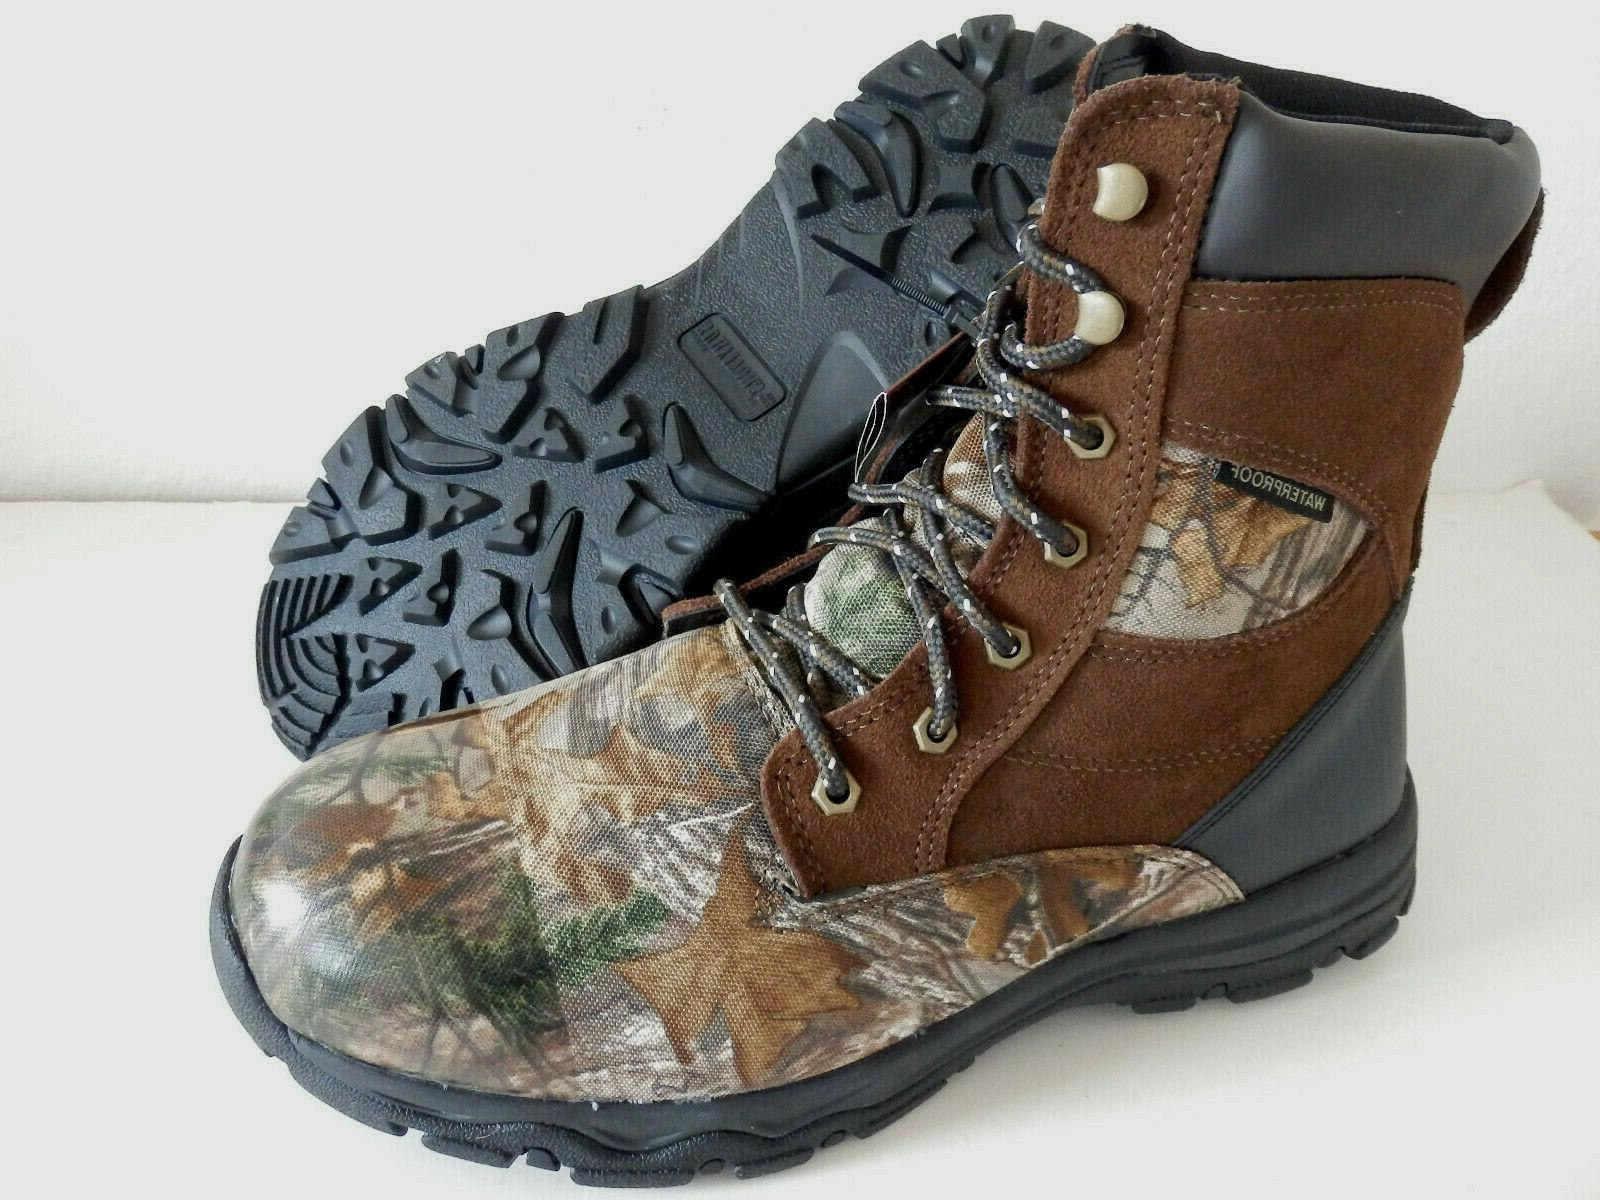 NEW Men's Hunting Camo Boots 800g Thinsulate 7.5-13